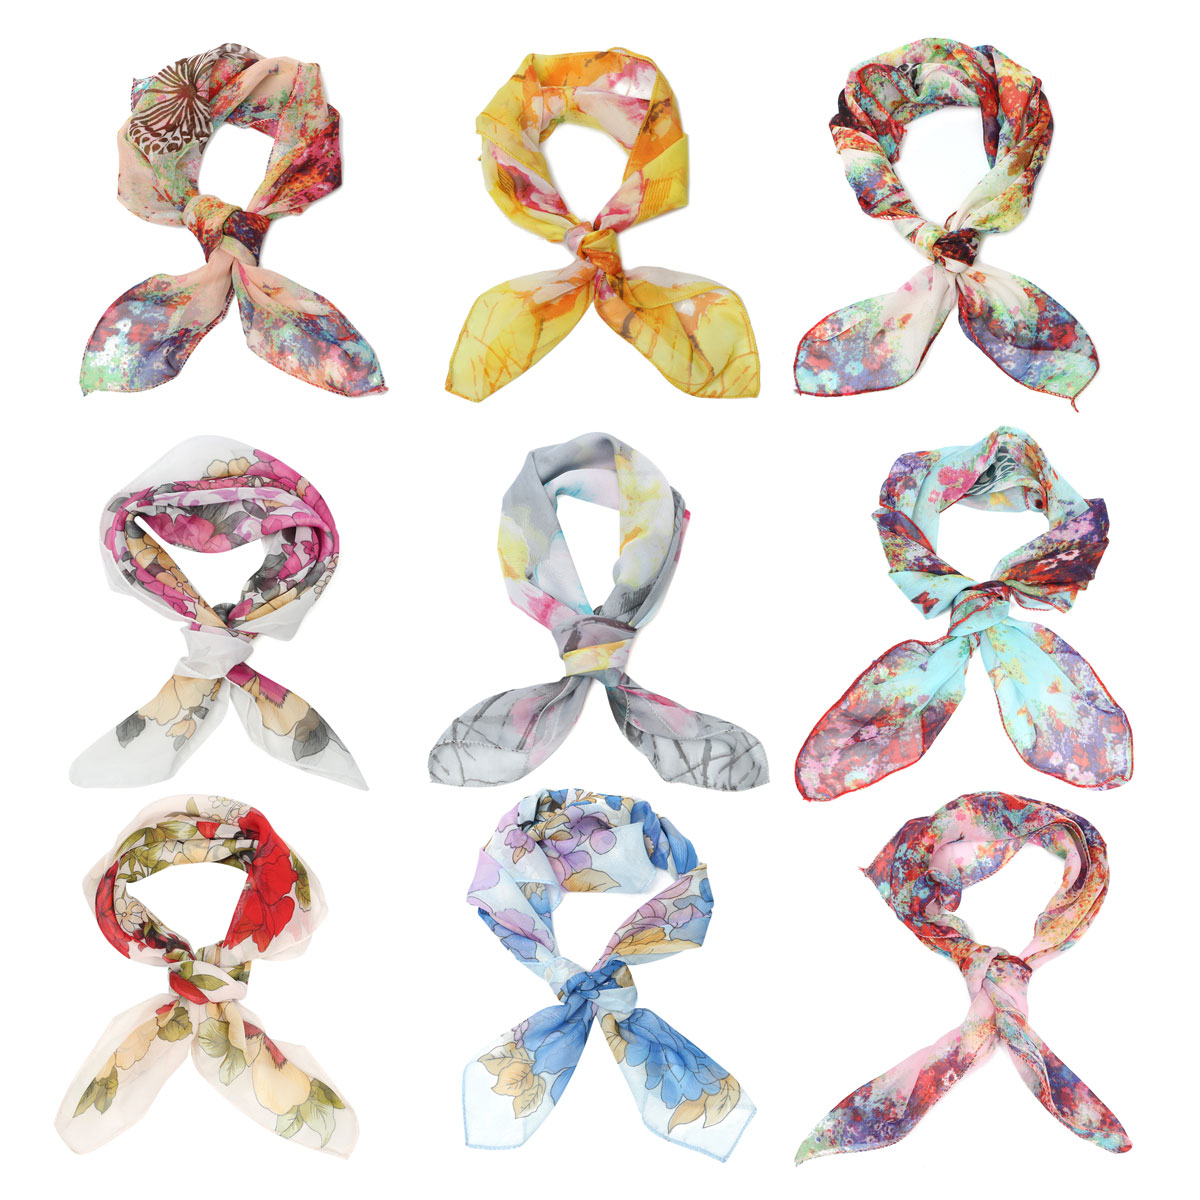 60x60cm Women Soft Flower Chiffon Small Square Scarf Scarves Bandanas Neck Accessories (Eachine1) Ann Arbor The prices of things